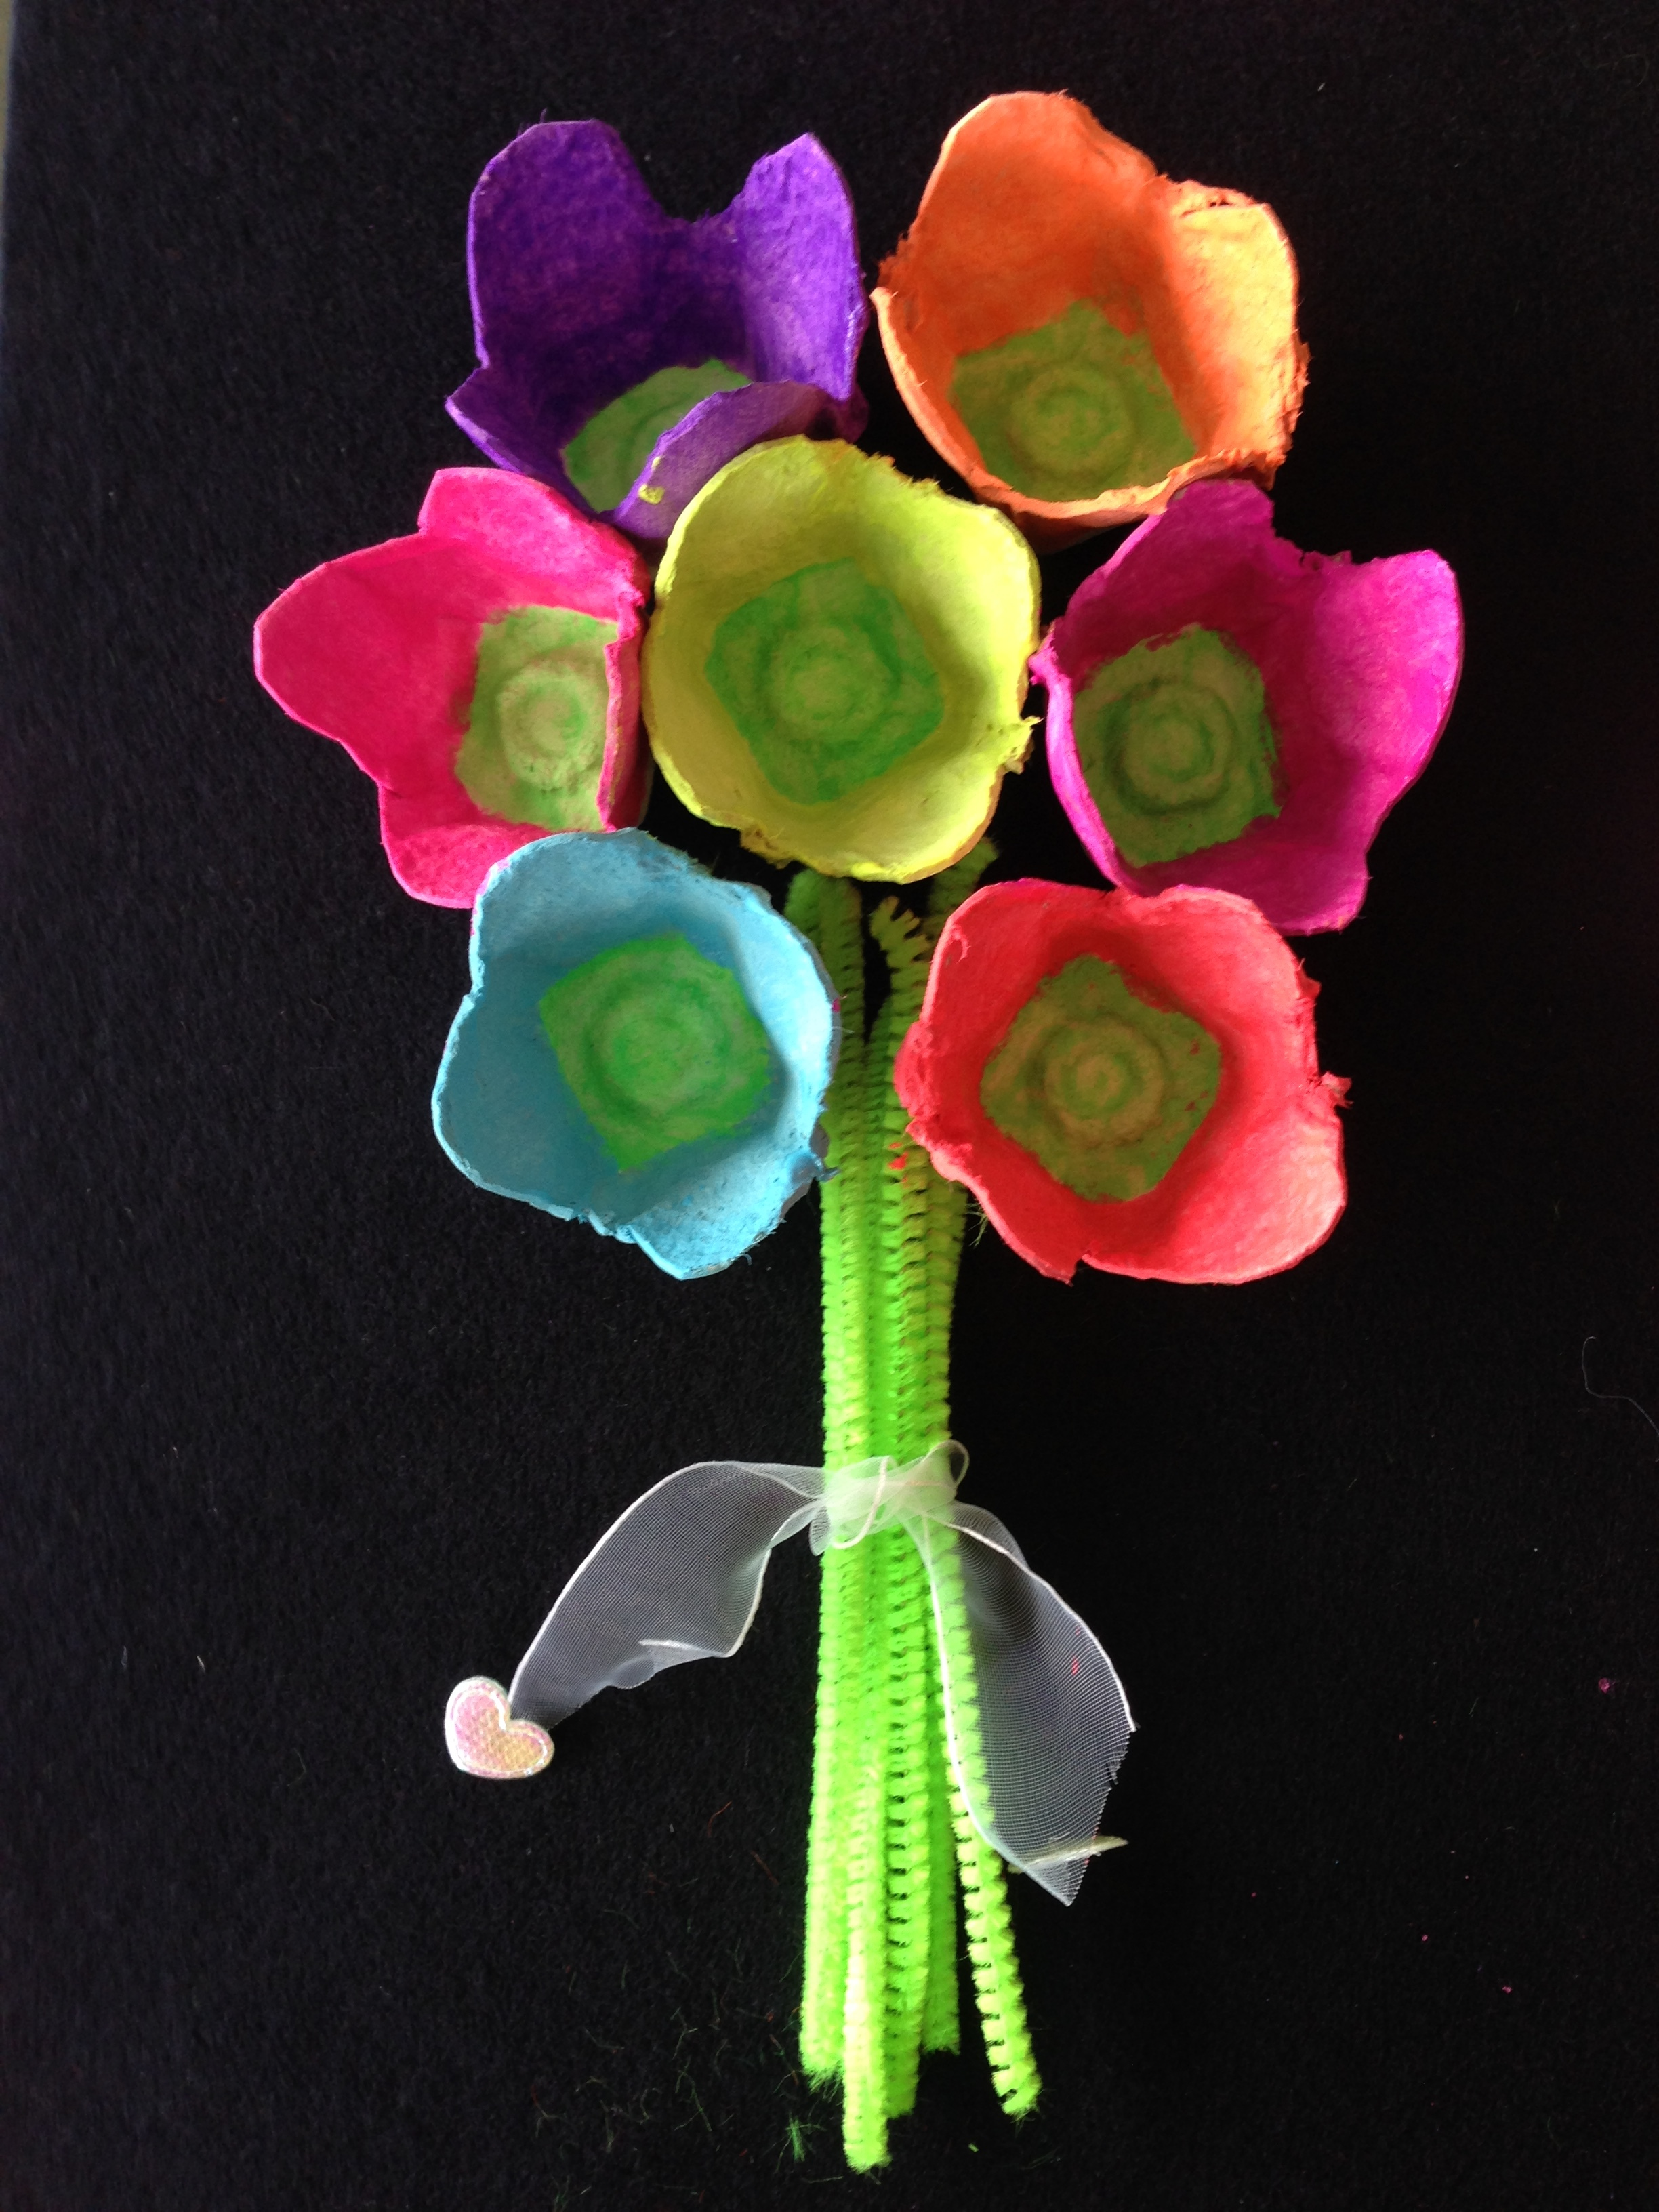 Egg carton flowers - Instructions1. Cut out the sections that the eggs sit in from the egg carton2. Paint these as flowers in any colors you like3. Glue them to a piece of wood or board4. Gather a few green pipe cleaners together and tie a ribbon around them5. Glue pipe cleaners to the wood as the stems of the flowers